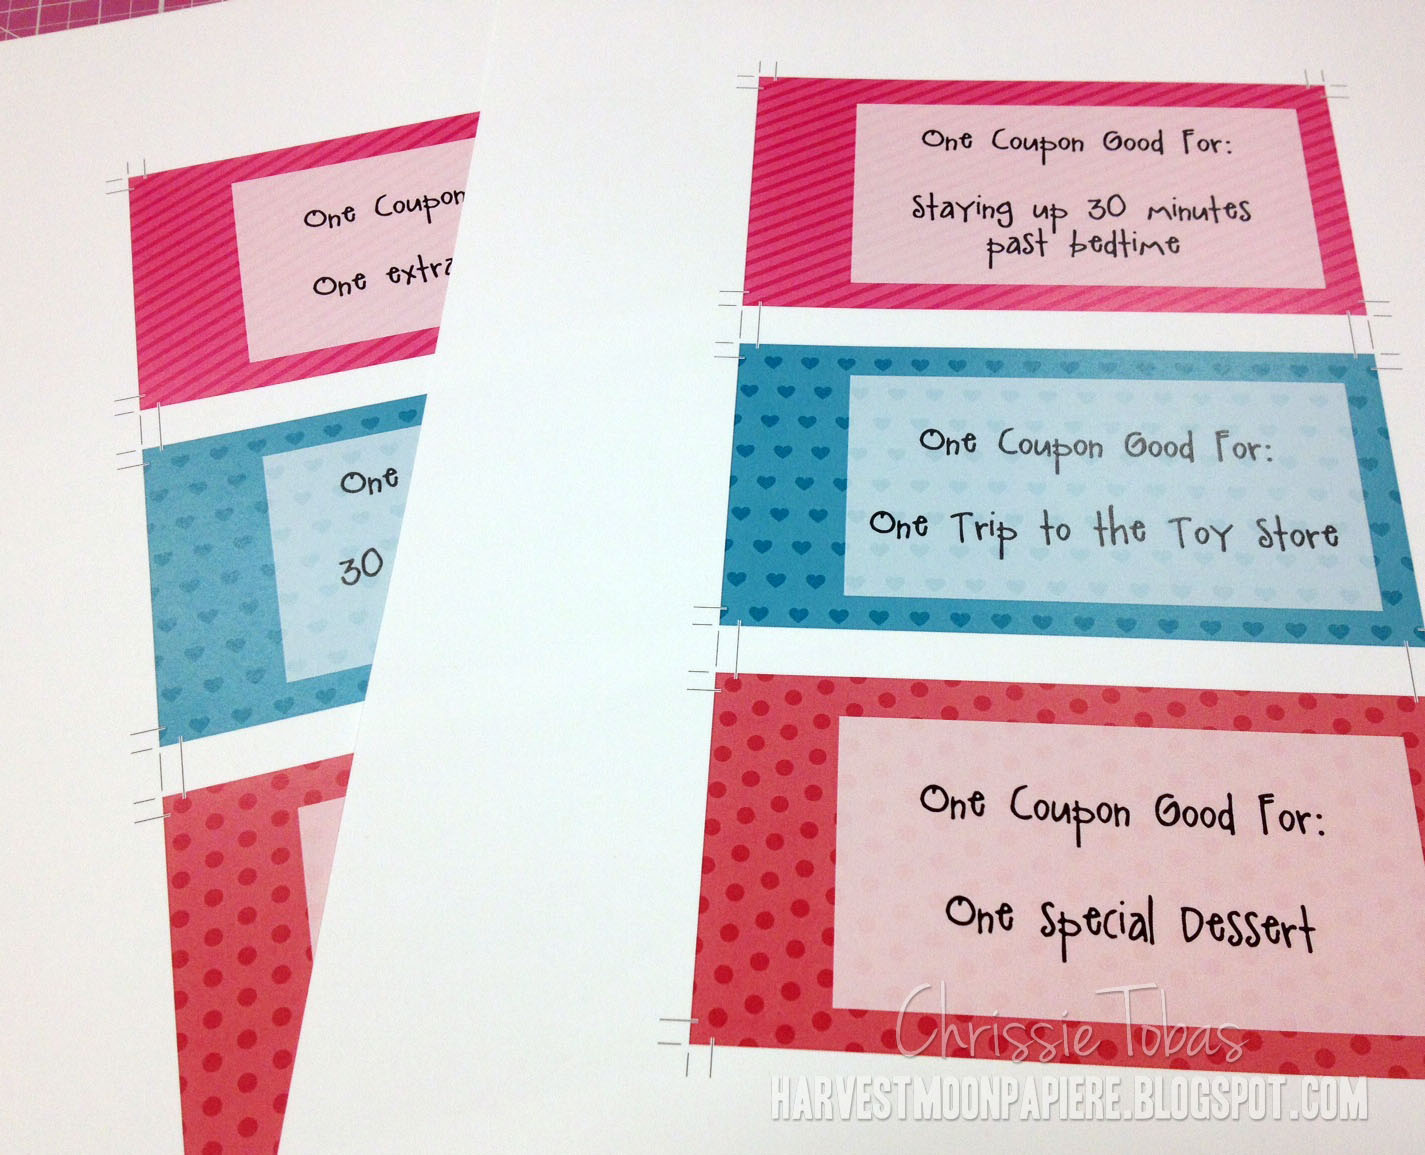 Valentines Coupon Book For ALL Ages. 1425 x 1155.Cute Homemade Valentines Gifts For Your Boyfriend